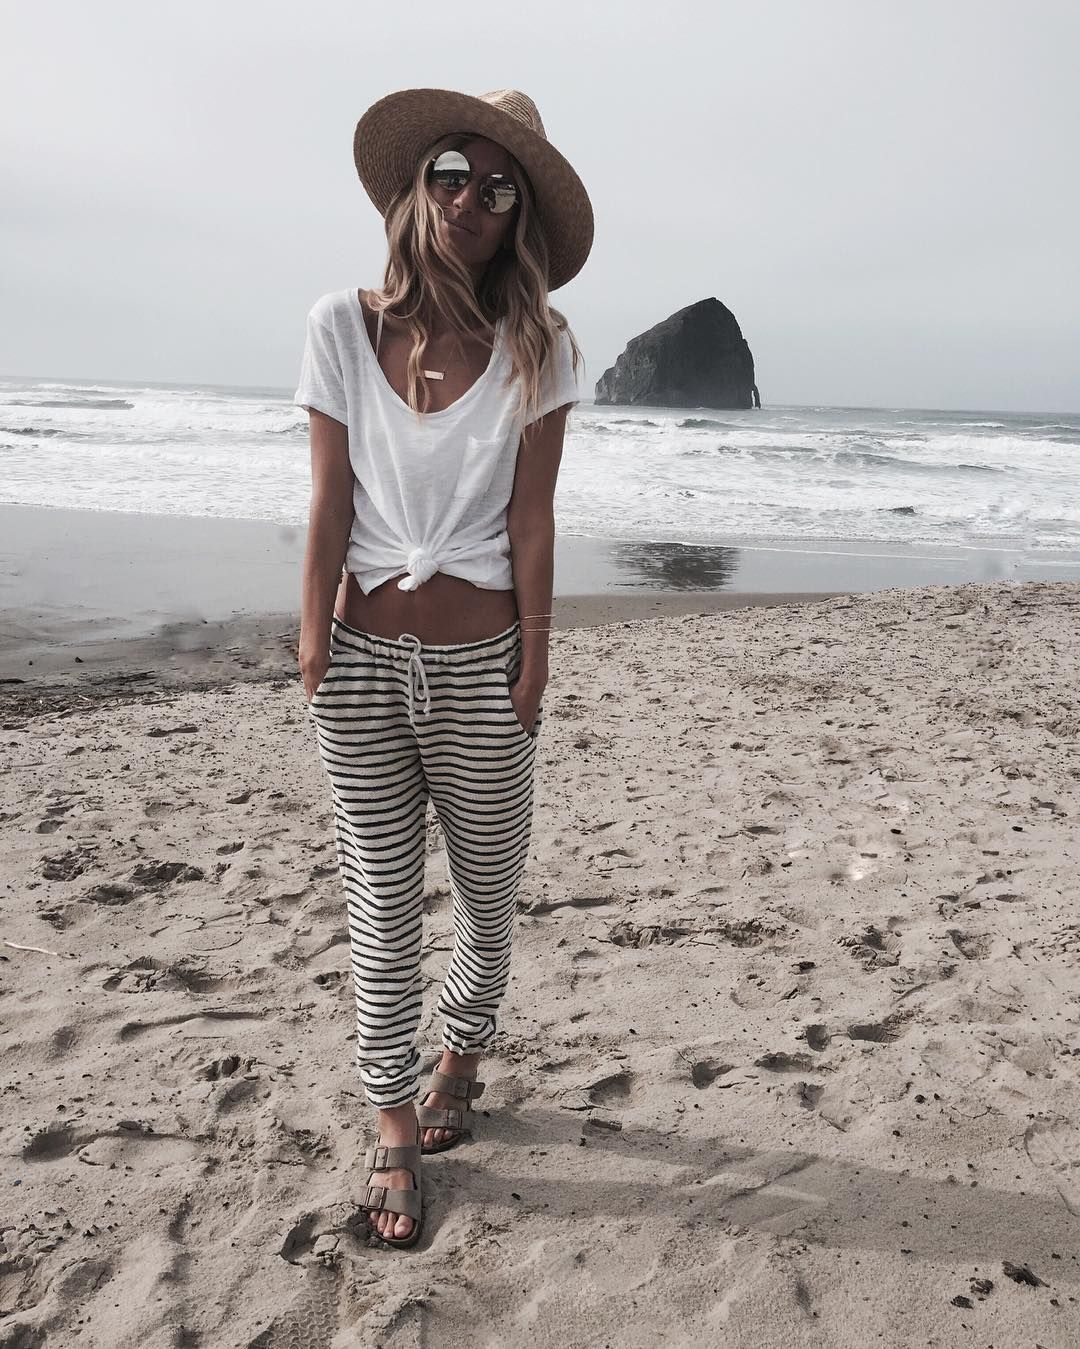 71cf62ad877 summer fashion. striped pants. beach look. vacation. white t-shirt. hat.  sunglasses. casual. 2016.